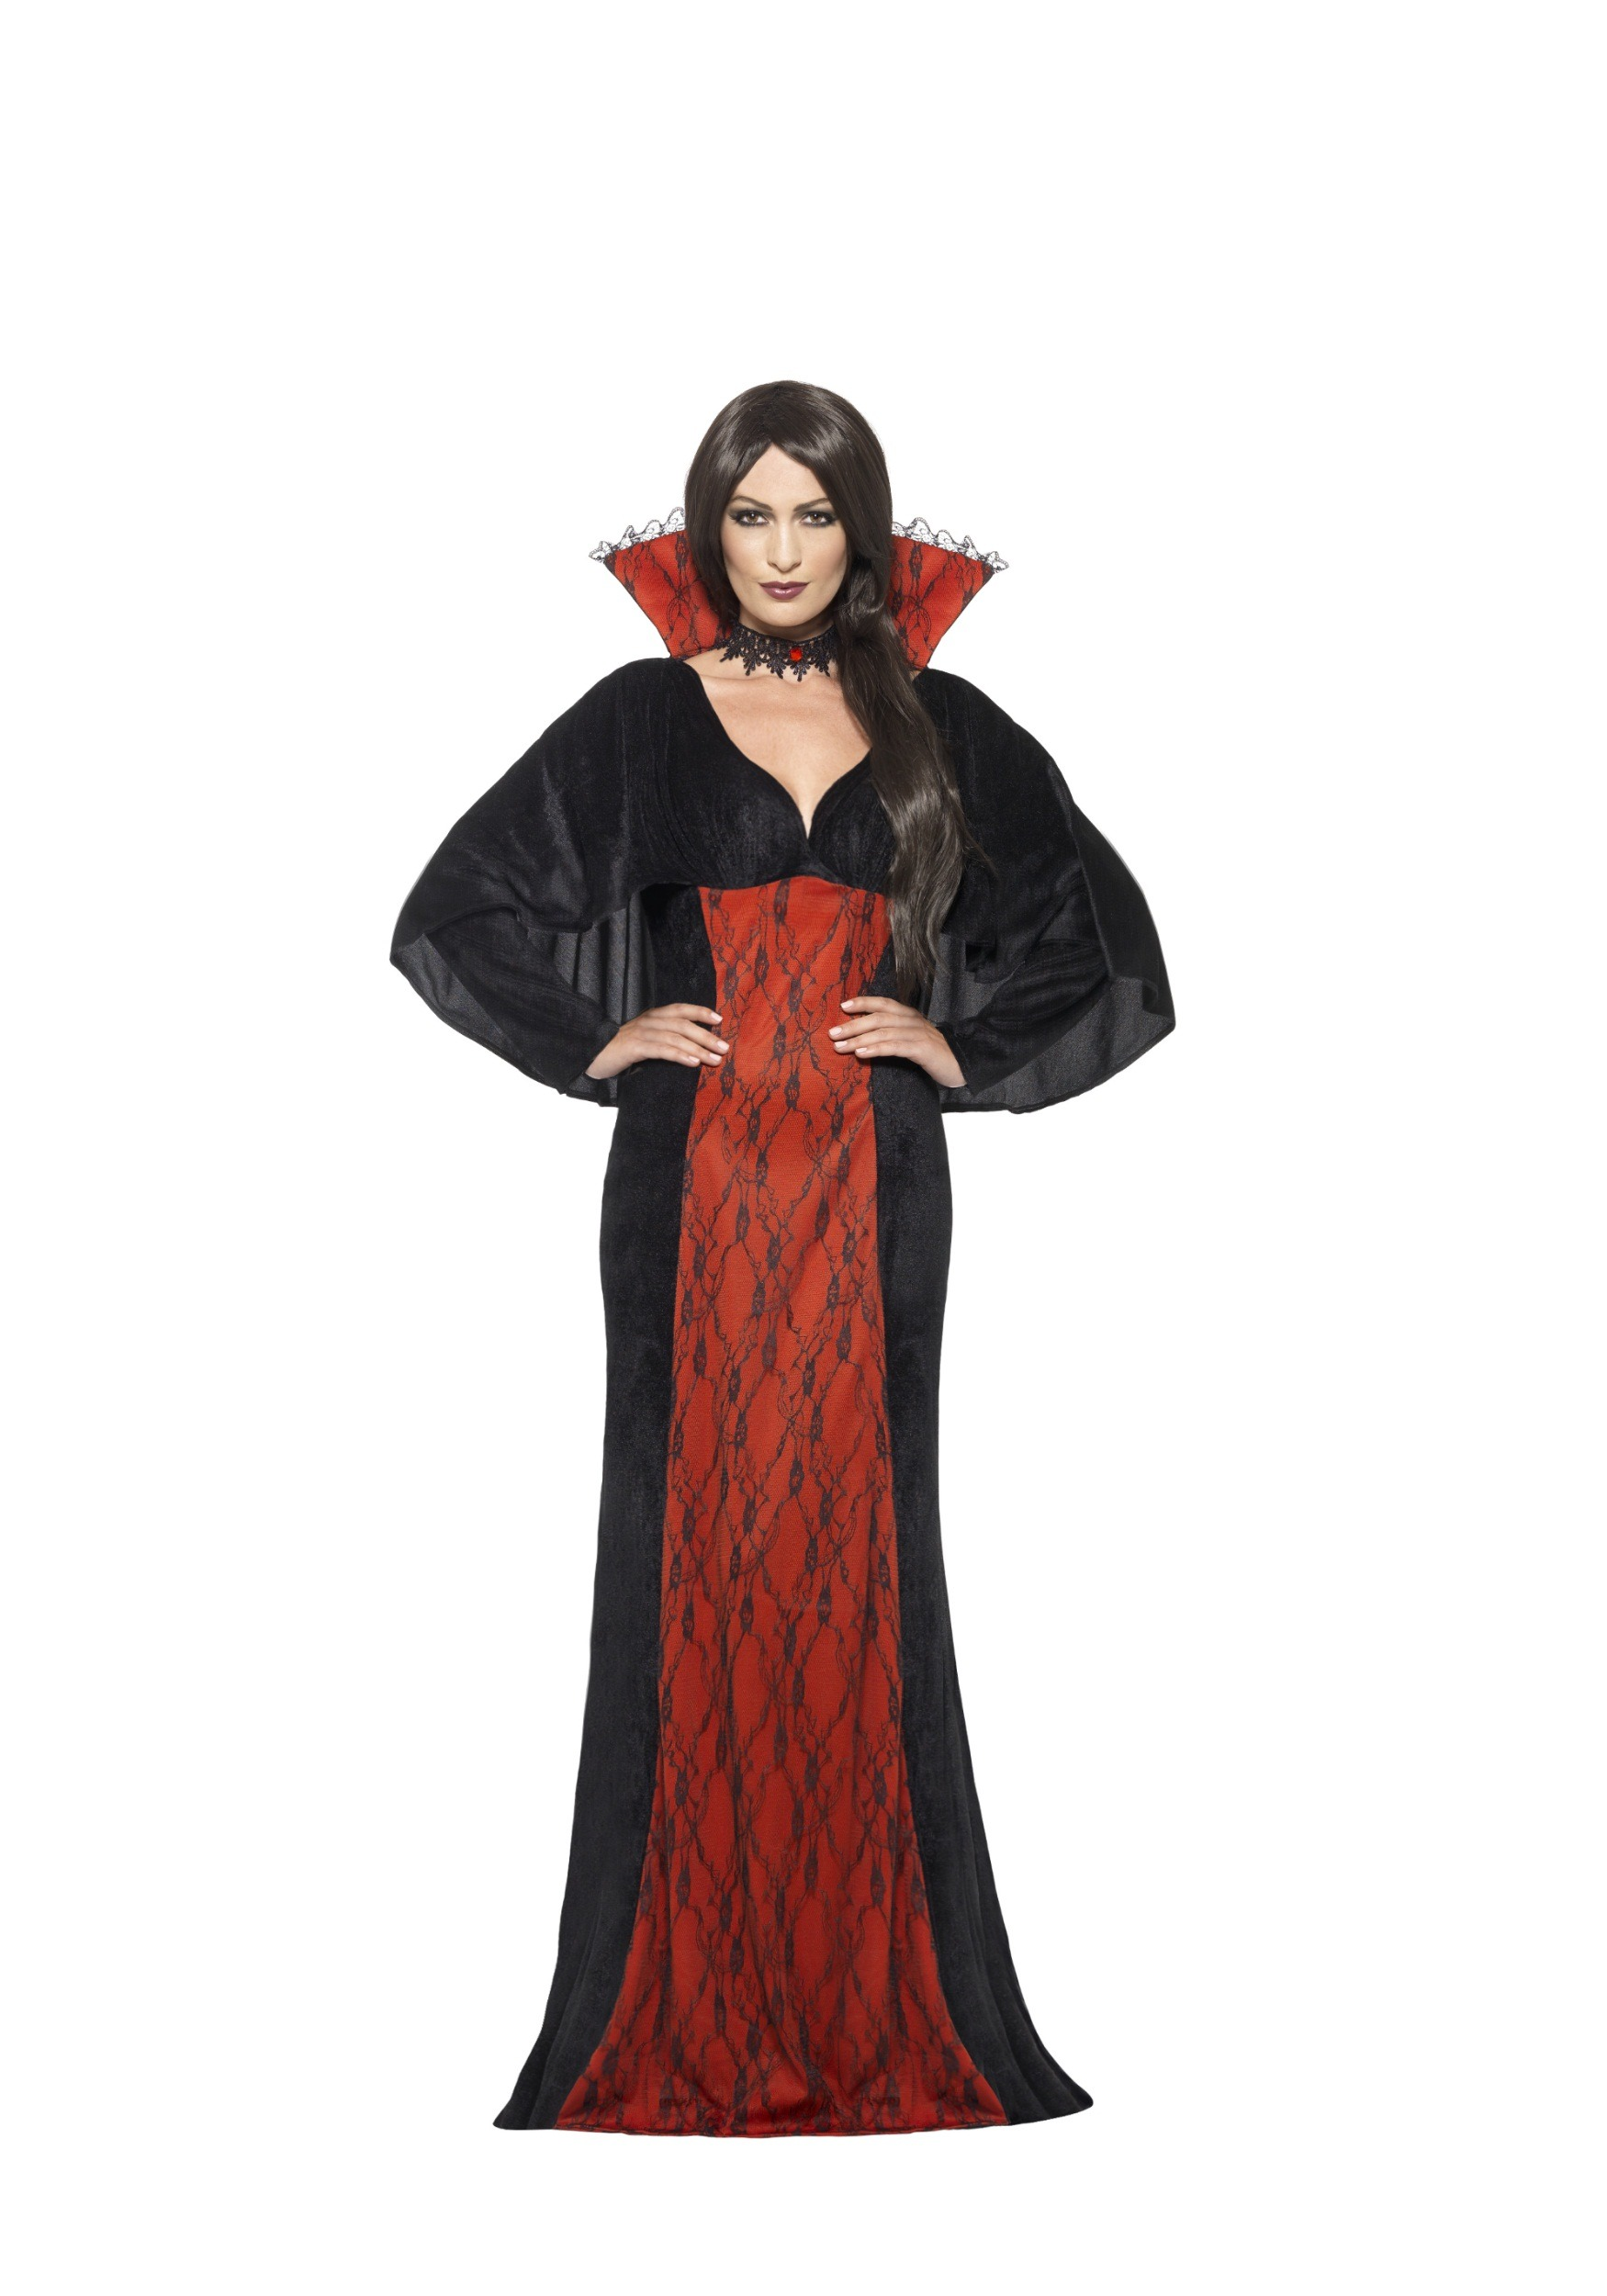 Women's Mystifying Vamp Costume